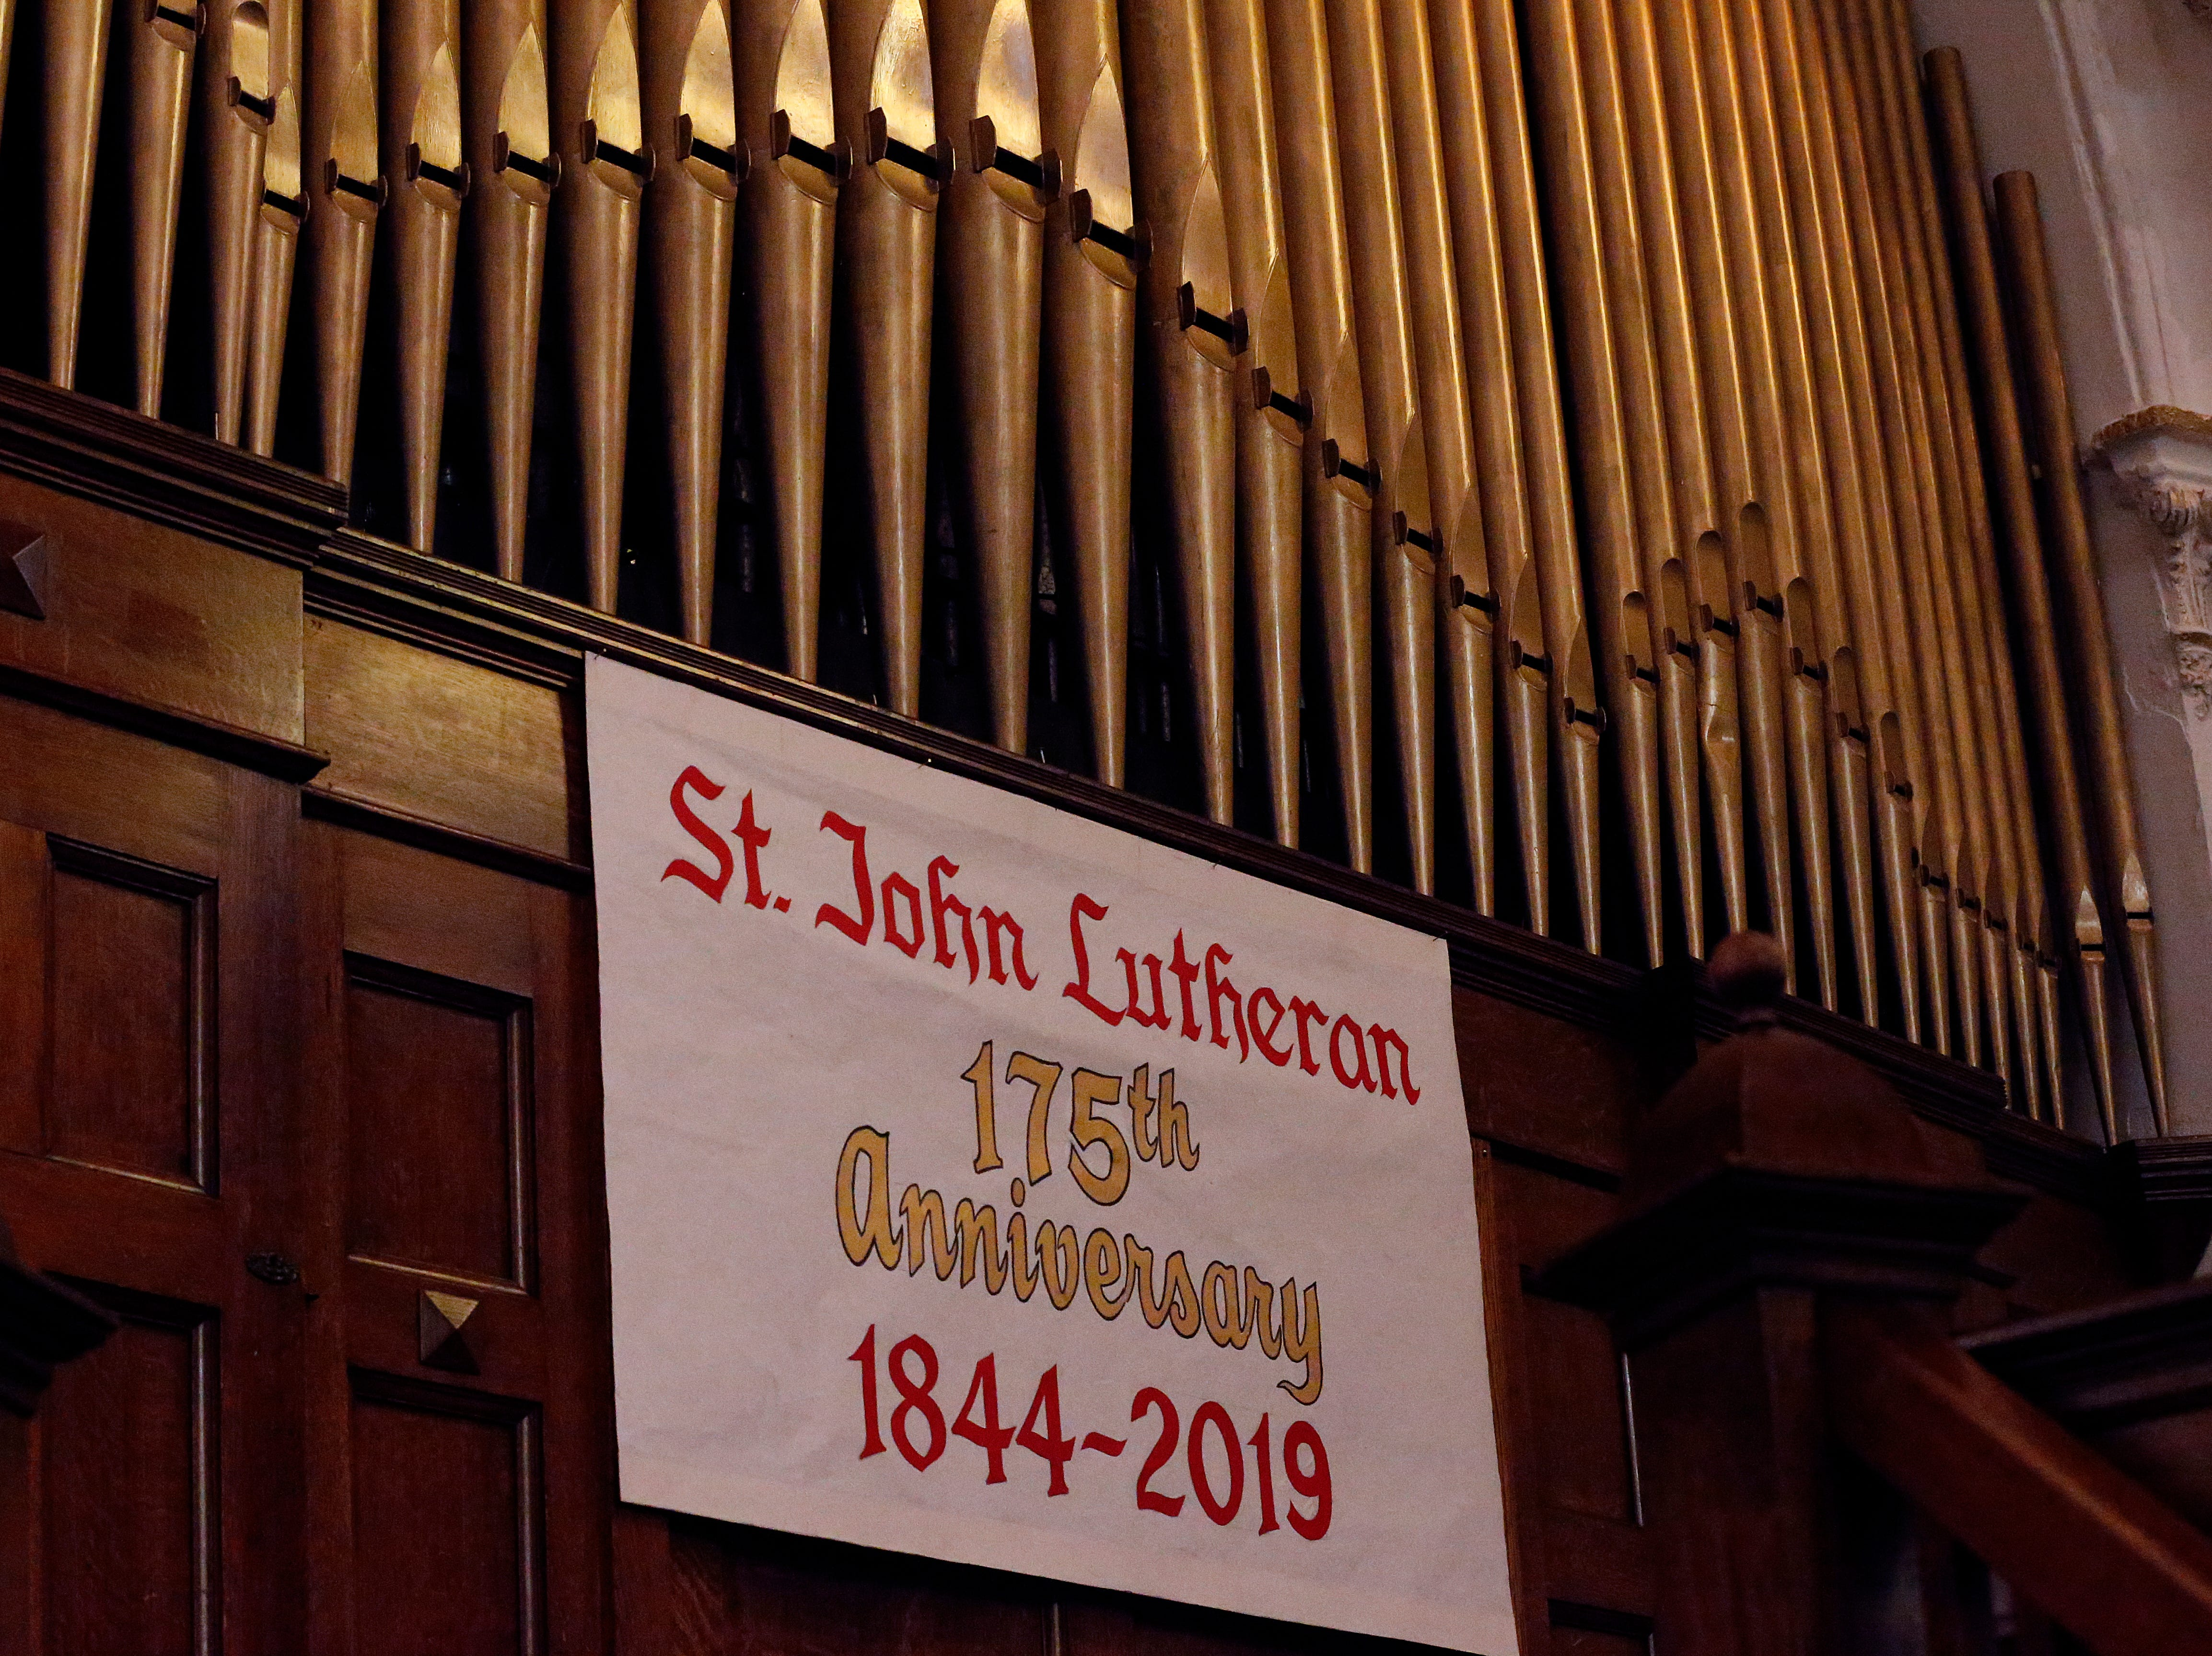 This is the 175th and final year for St. John Lutheran Church in Richmond.